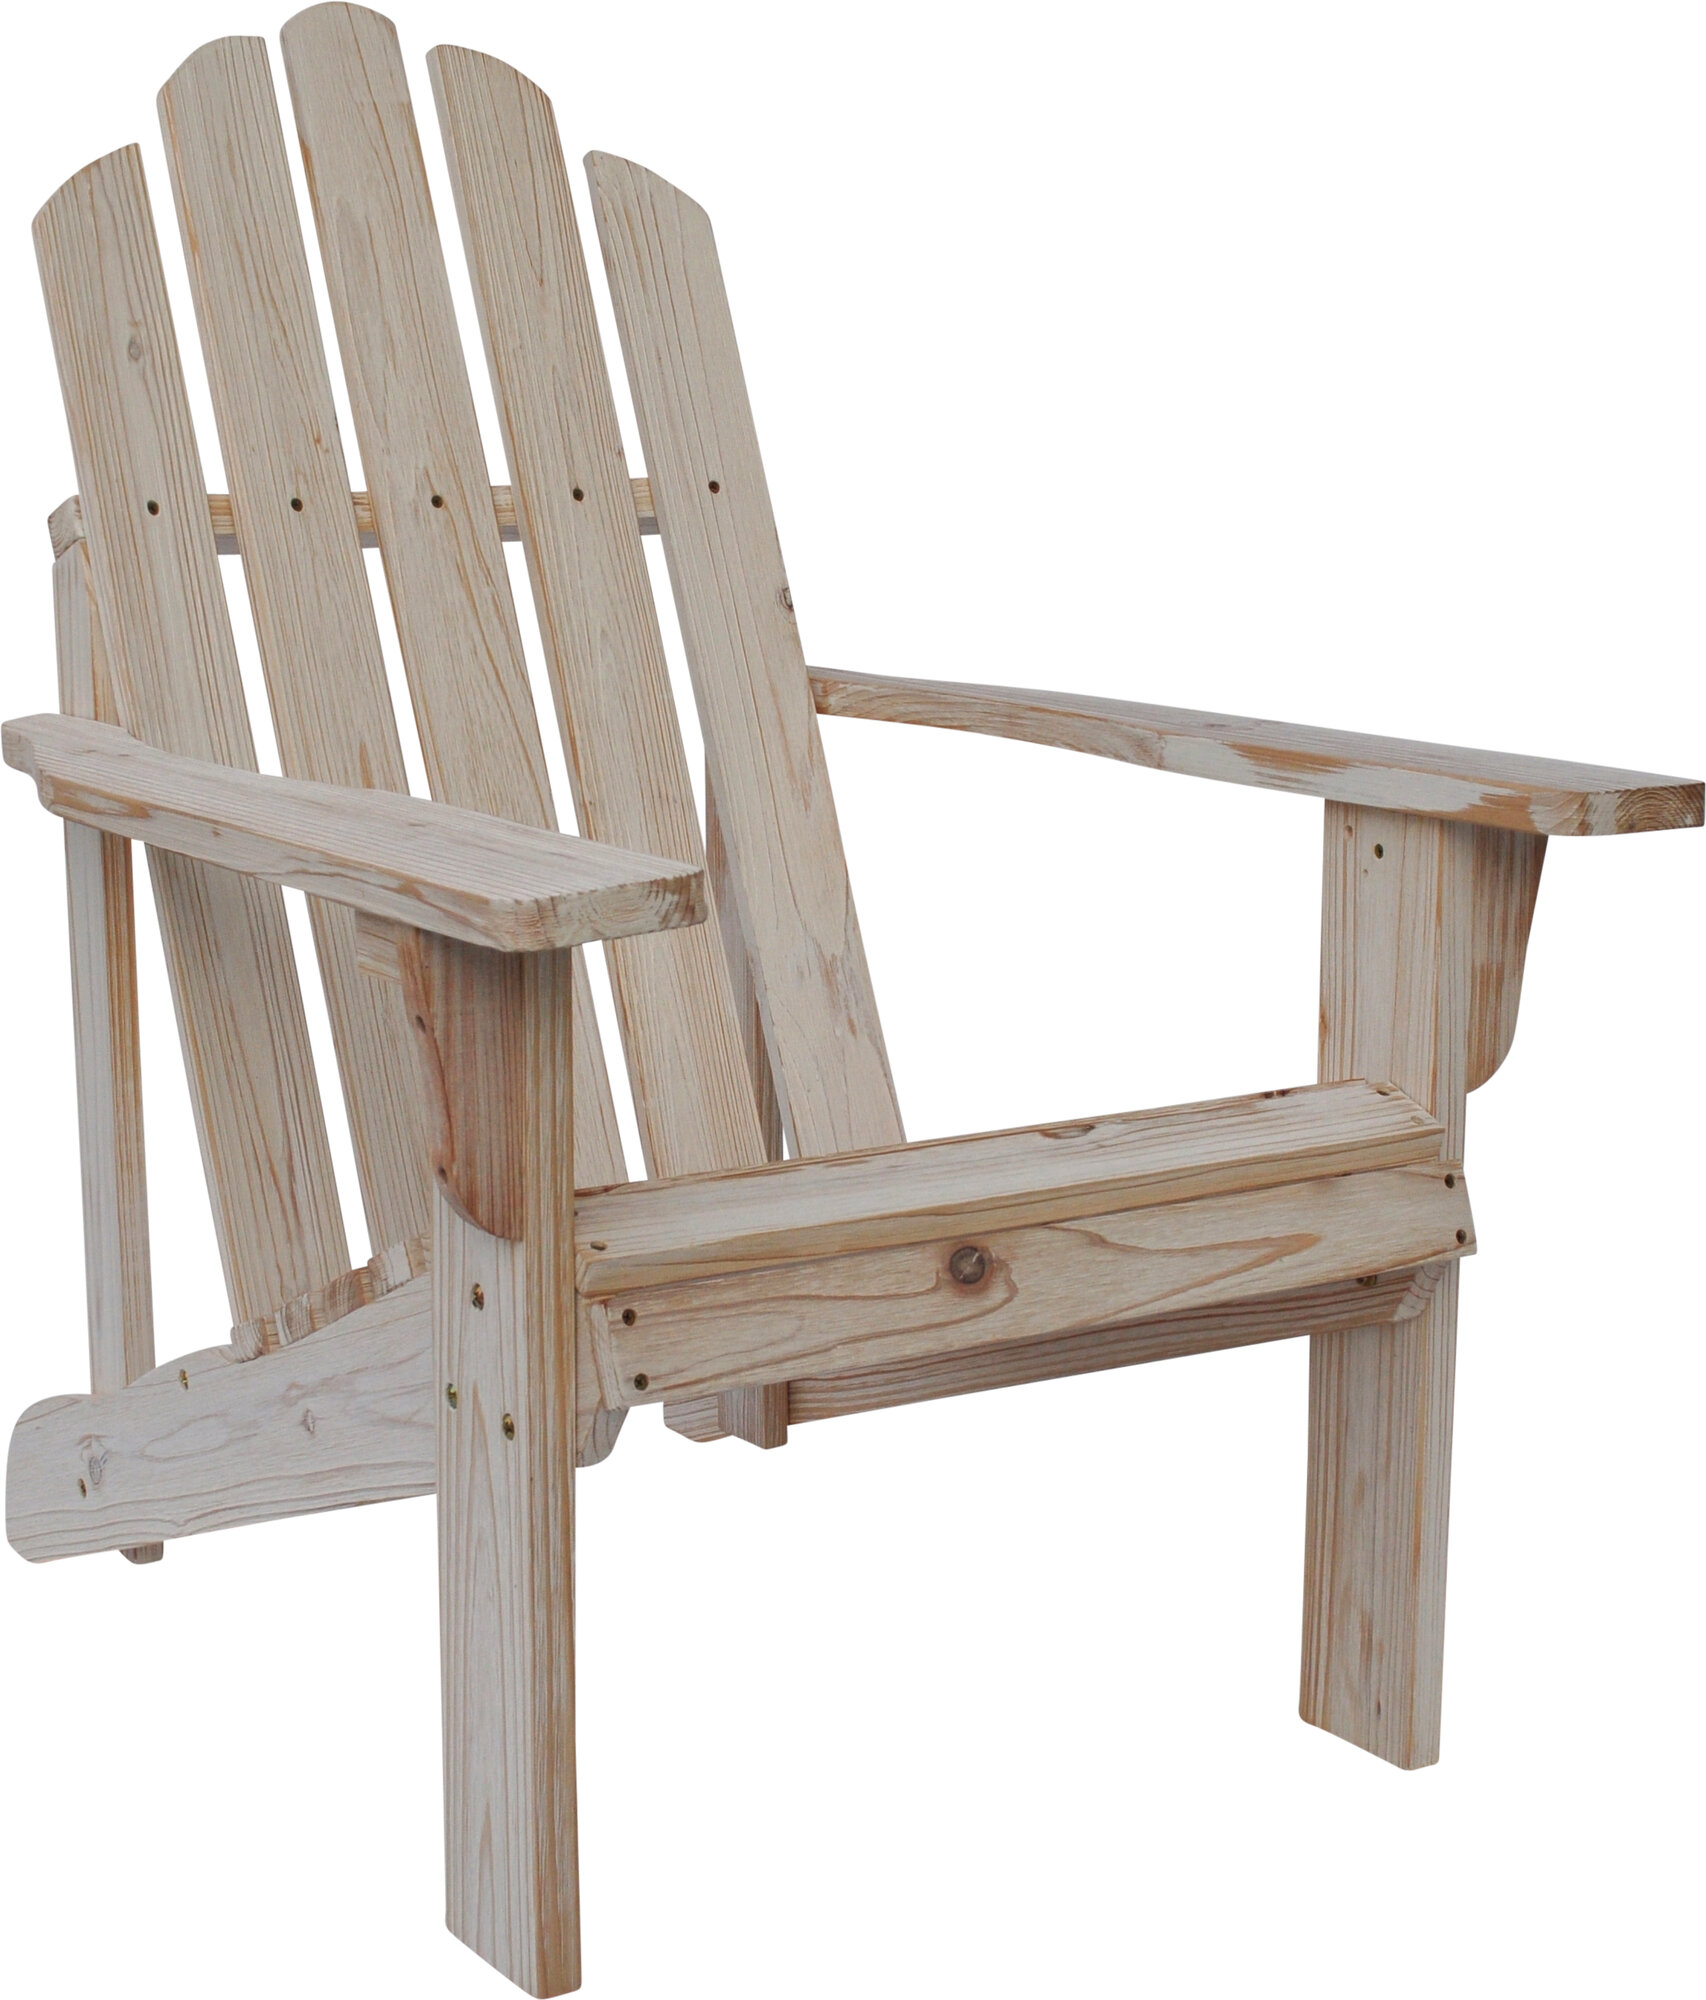 Shine Company Inc Adirondack Chair